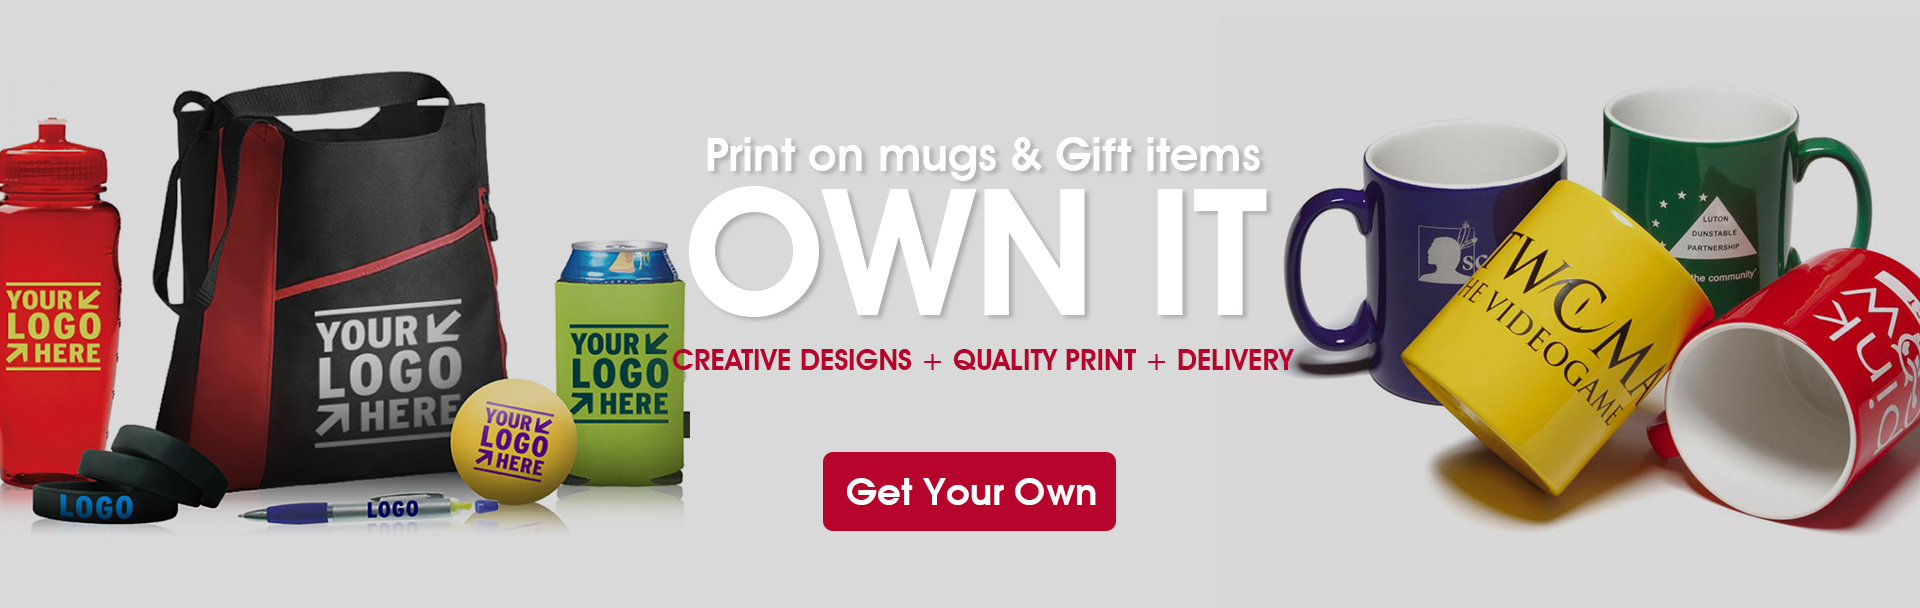 Corporate Gifts Printing in gurgaon sector 31